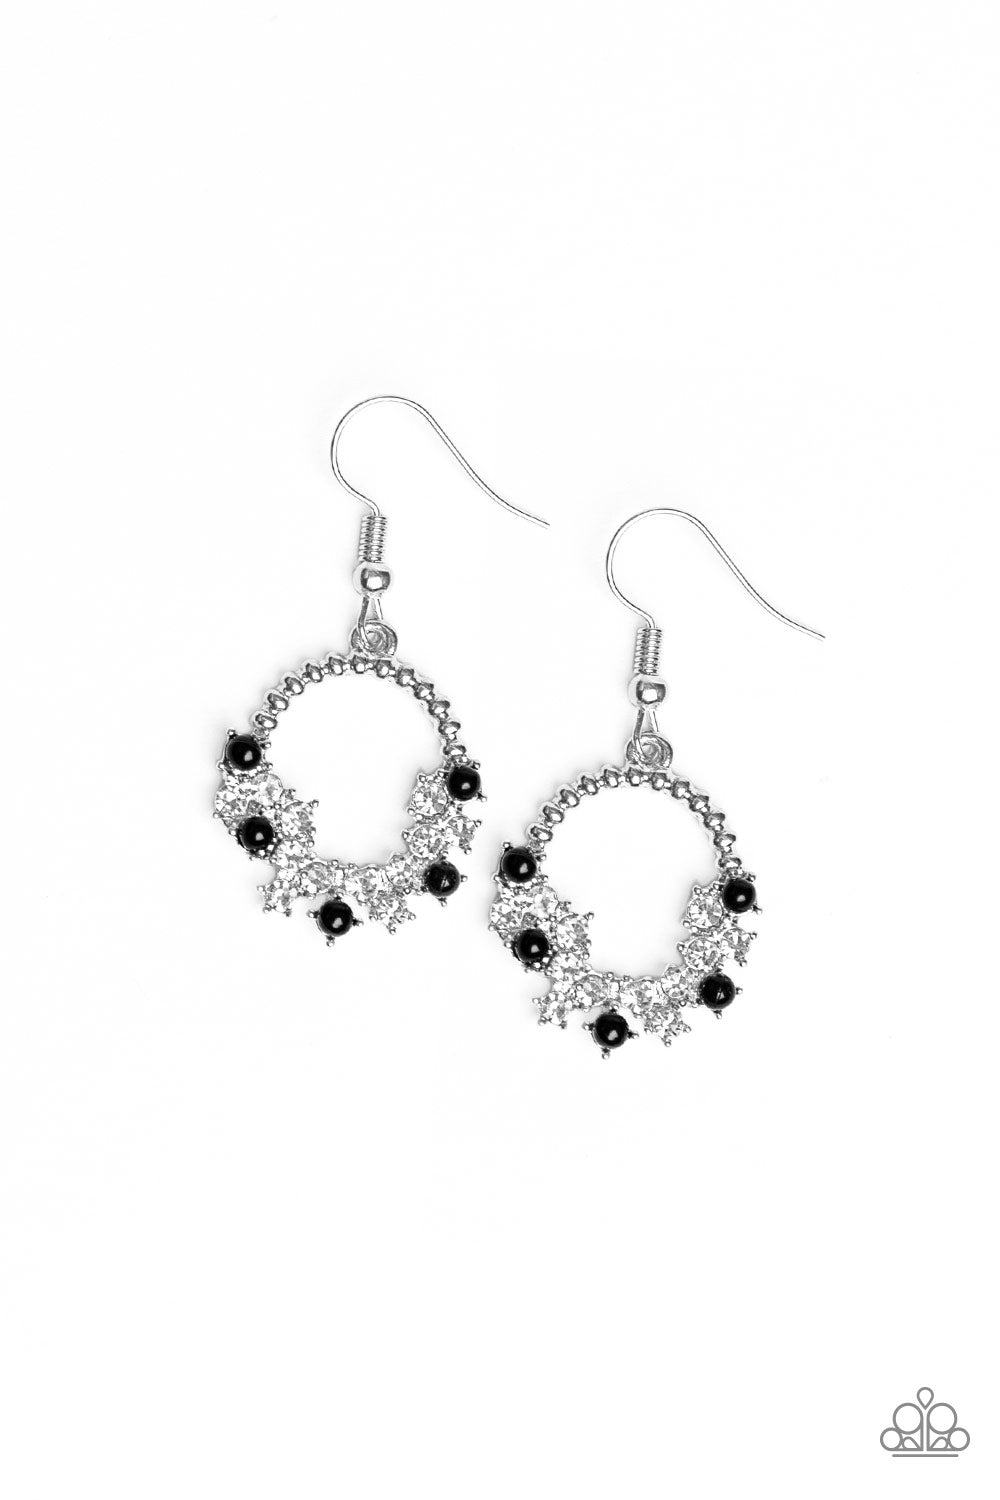 Refined Razzle - Black Paparazzi Jewelry Earrings